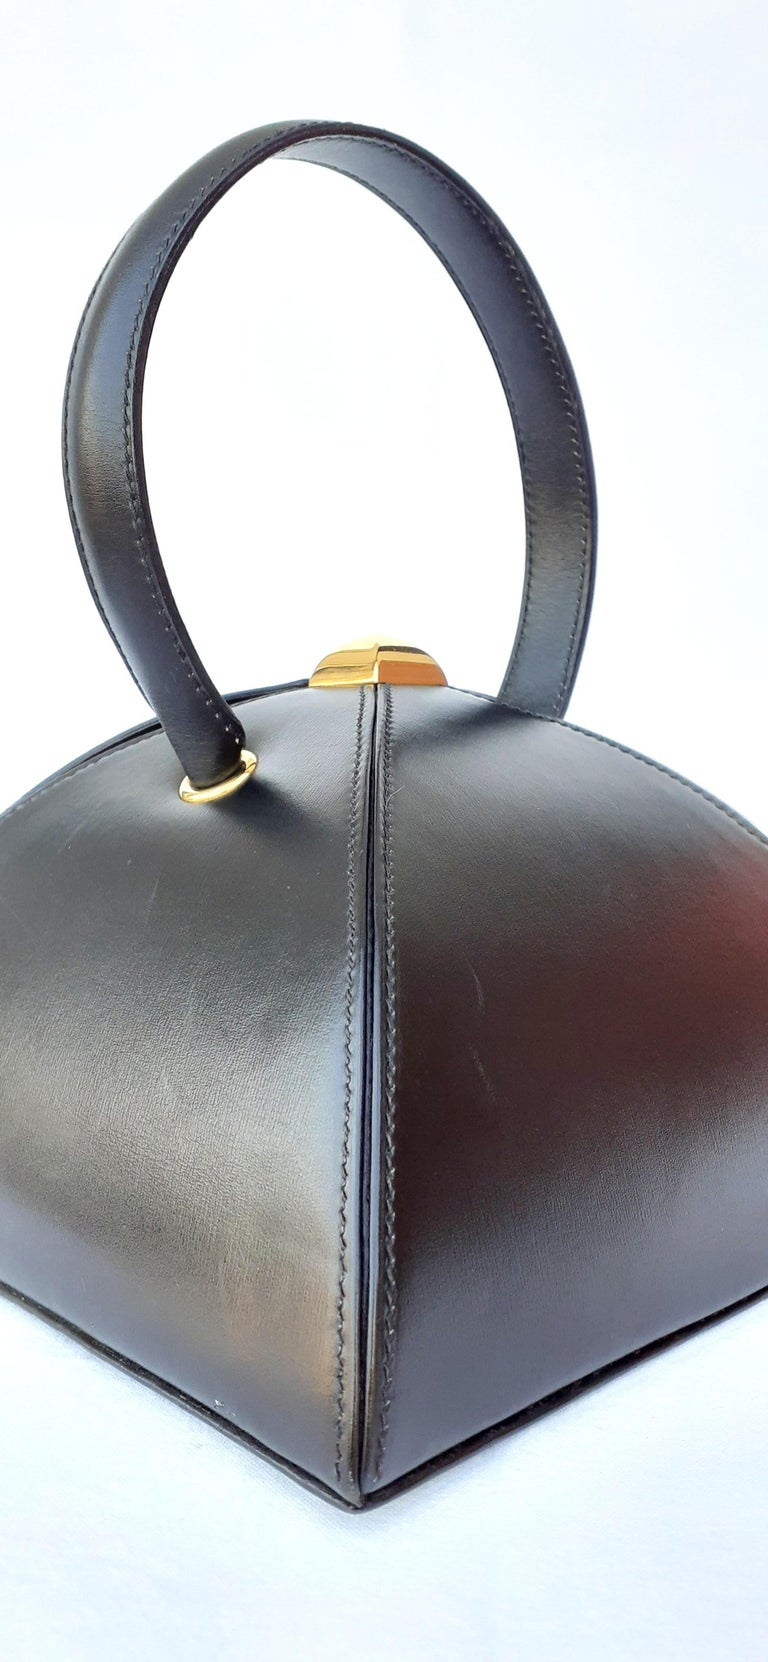 Women's Exceptional Hermès Vintage Tee Time Bag Minaudiere Black Box Leather Ghw RARE For Sale